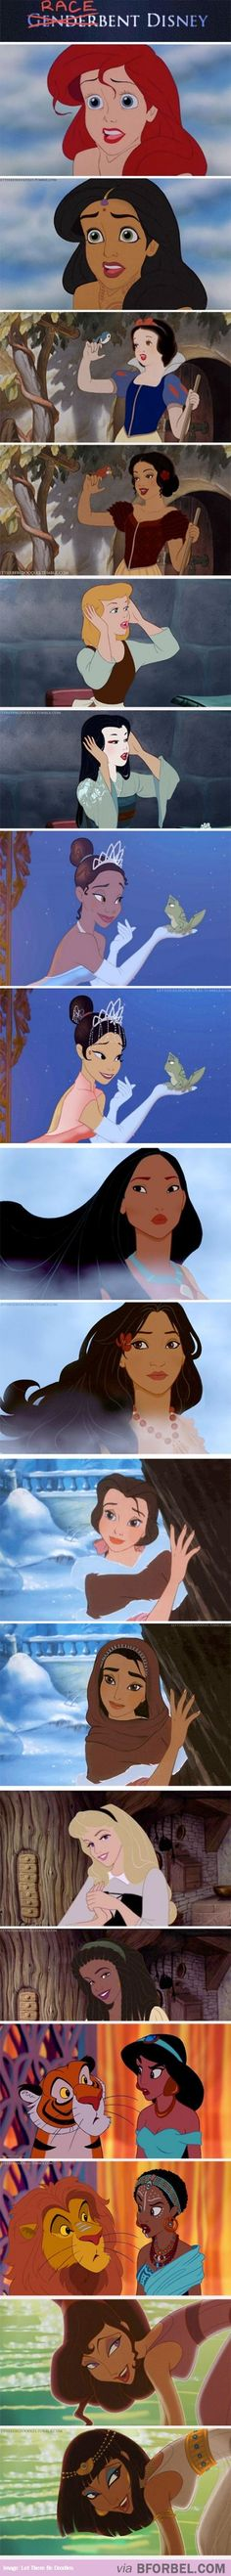 9 Disney Raceswapped Princesses. Love this